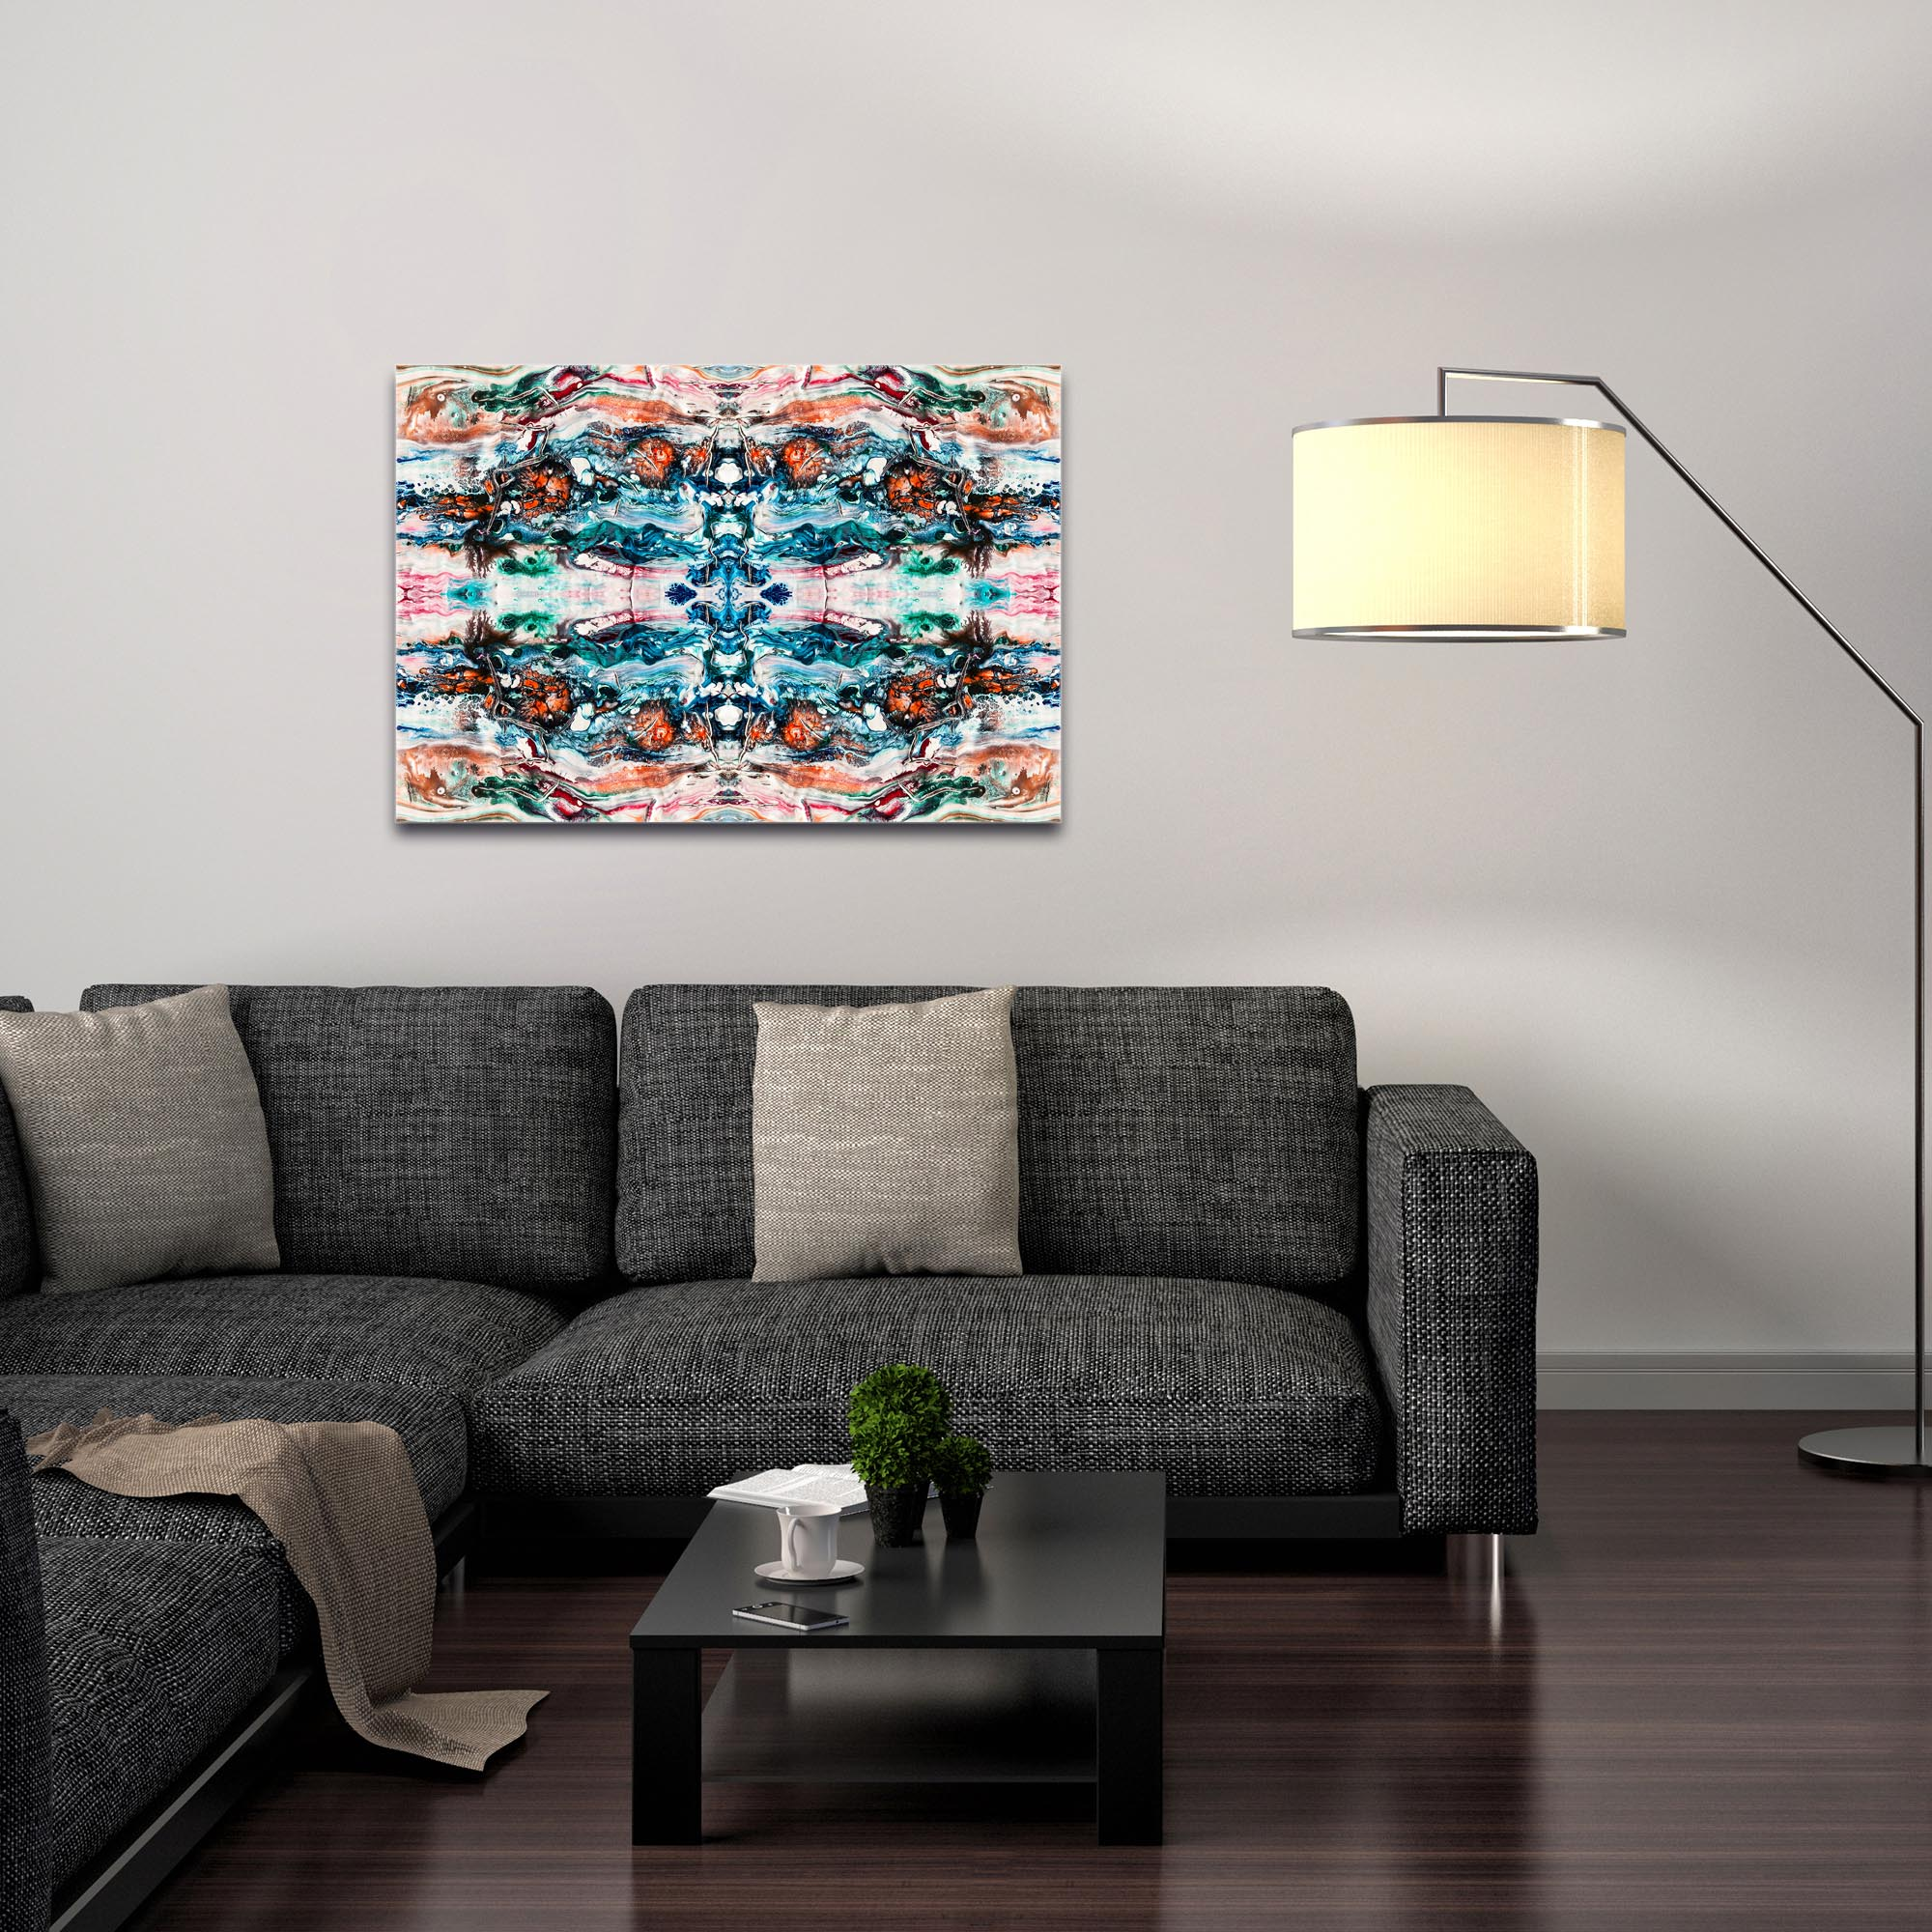 Abstract Wall Art 'Sunset On Her Breath 7 Quad' - Colorful Urban Decor on Metal or Plexiglass - Image 3